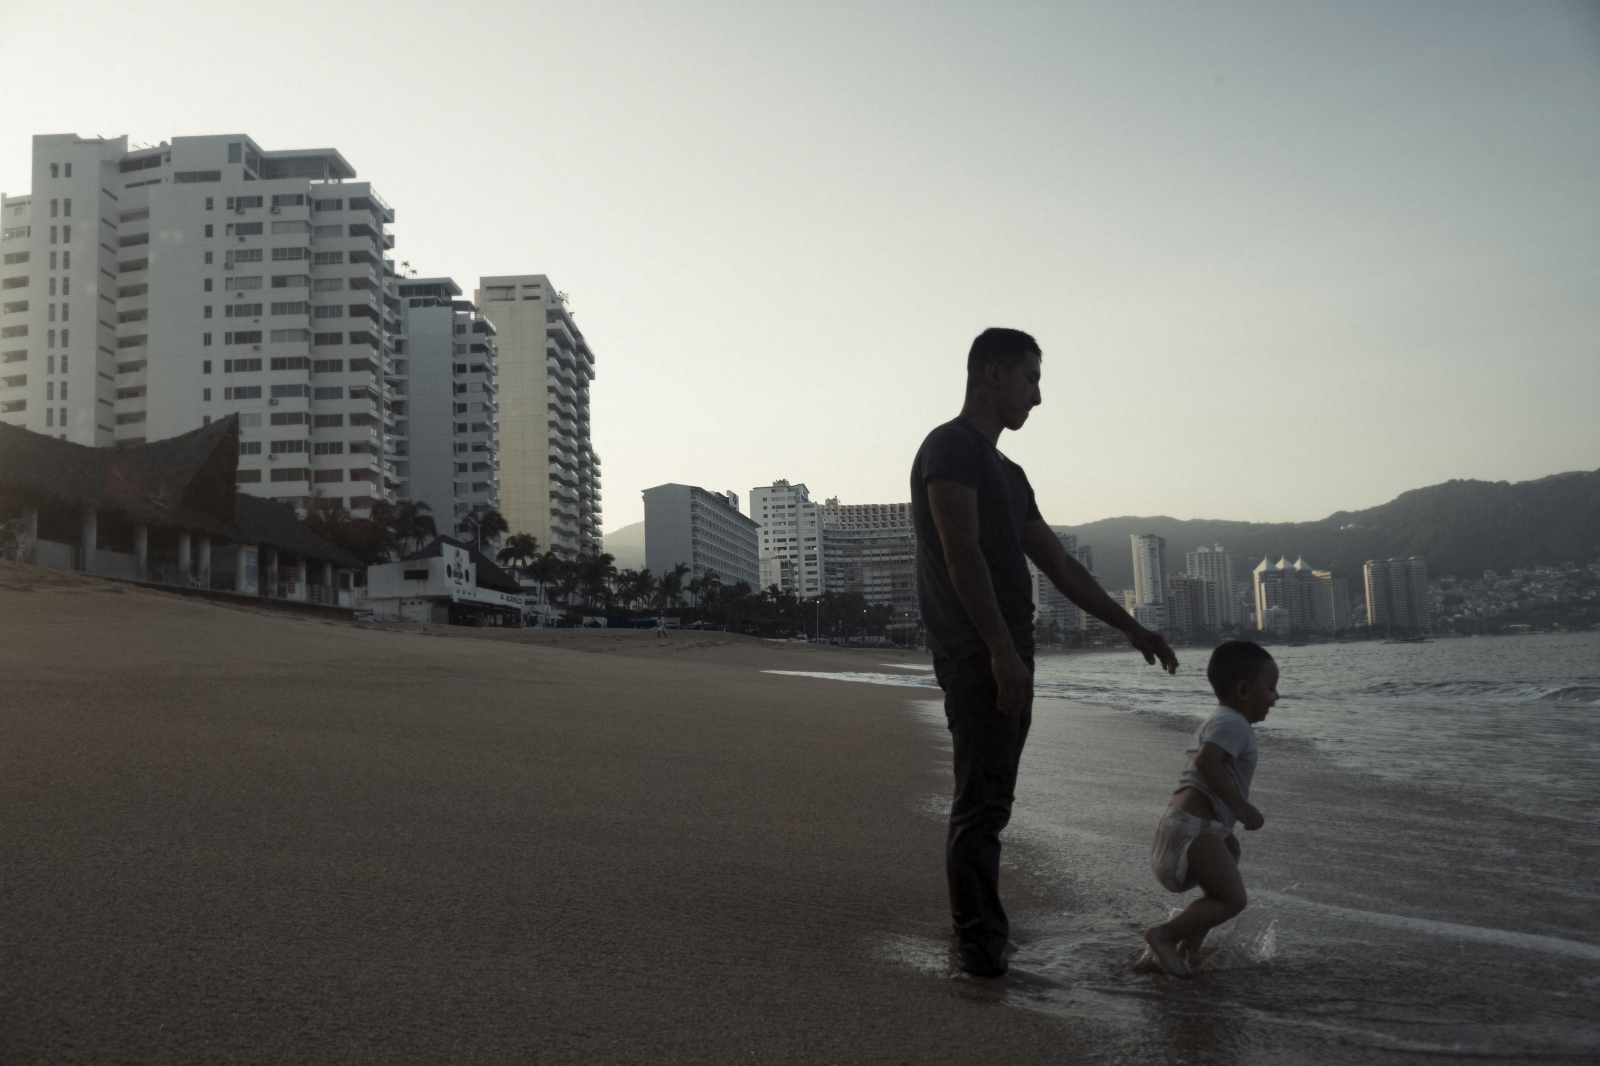 Andres Vladimir, who was visiting Acapulco from Mexico City, introduces his 3-year-old son Harek to the sea.  Many of those visiting Acapulco's shores, especially those with extensive tattooing that could be associated with gang affiliation like Andres, visit the shores in the early hours of the day to avoid possible confrontations which could arise at other times.  A safer time, at dawn Andres didn't have to worry as much about murder.